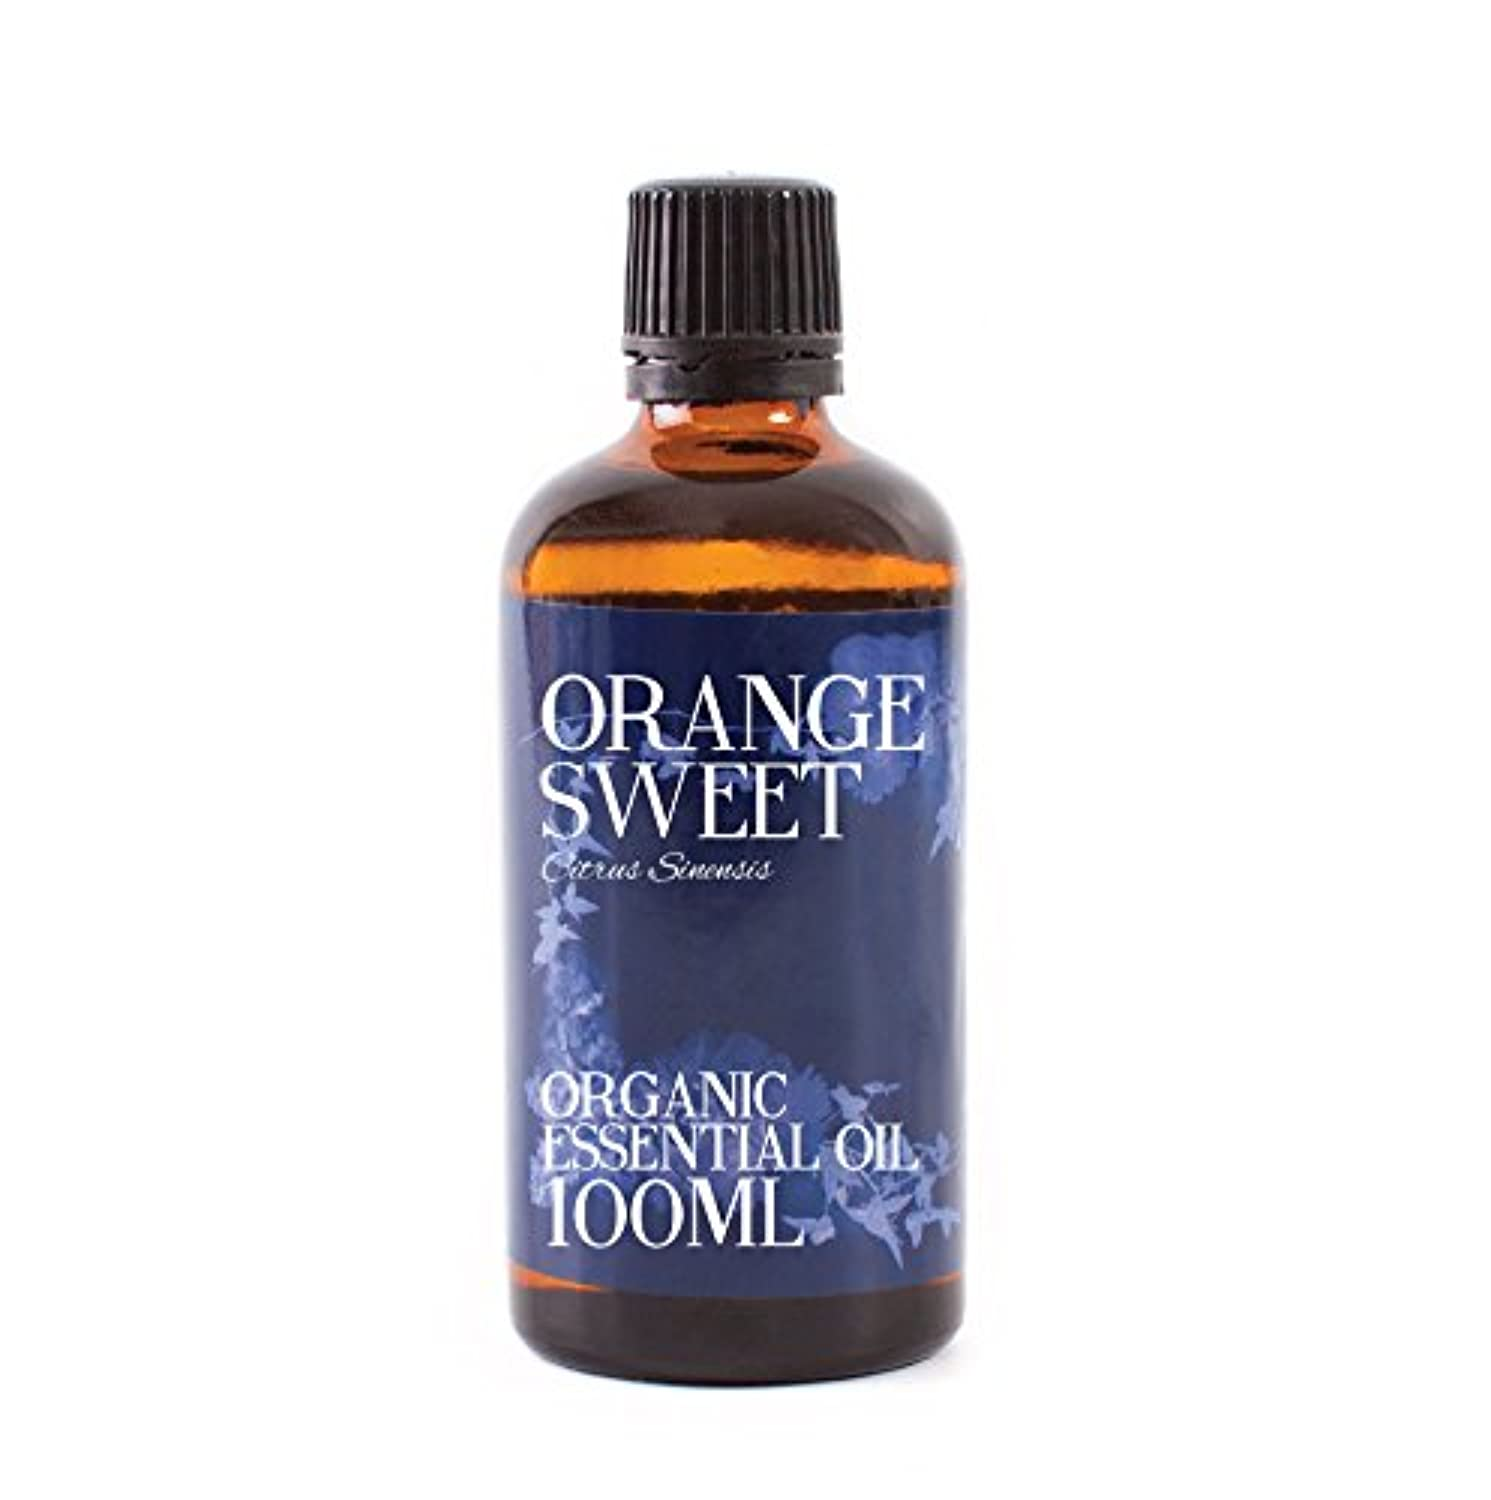 Mystic Moments | Orange Sweet Organic Essential Oil - 100ml - 100% Pure